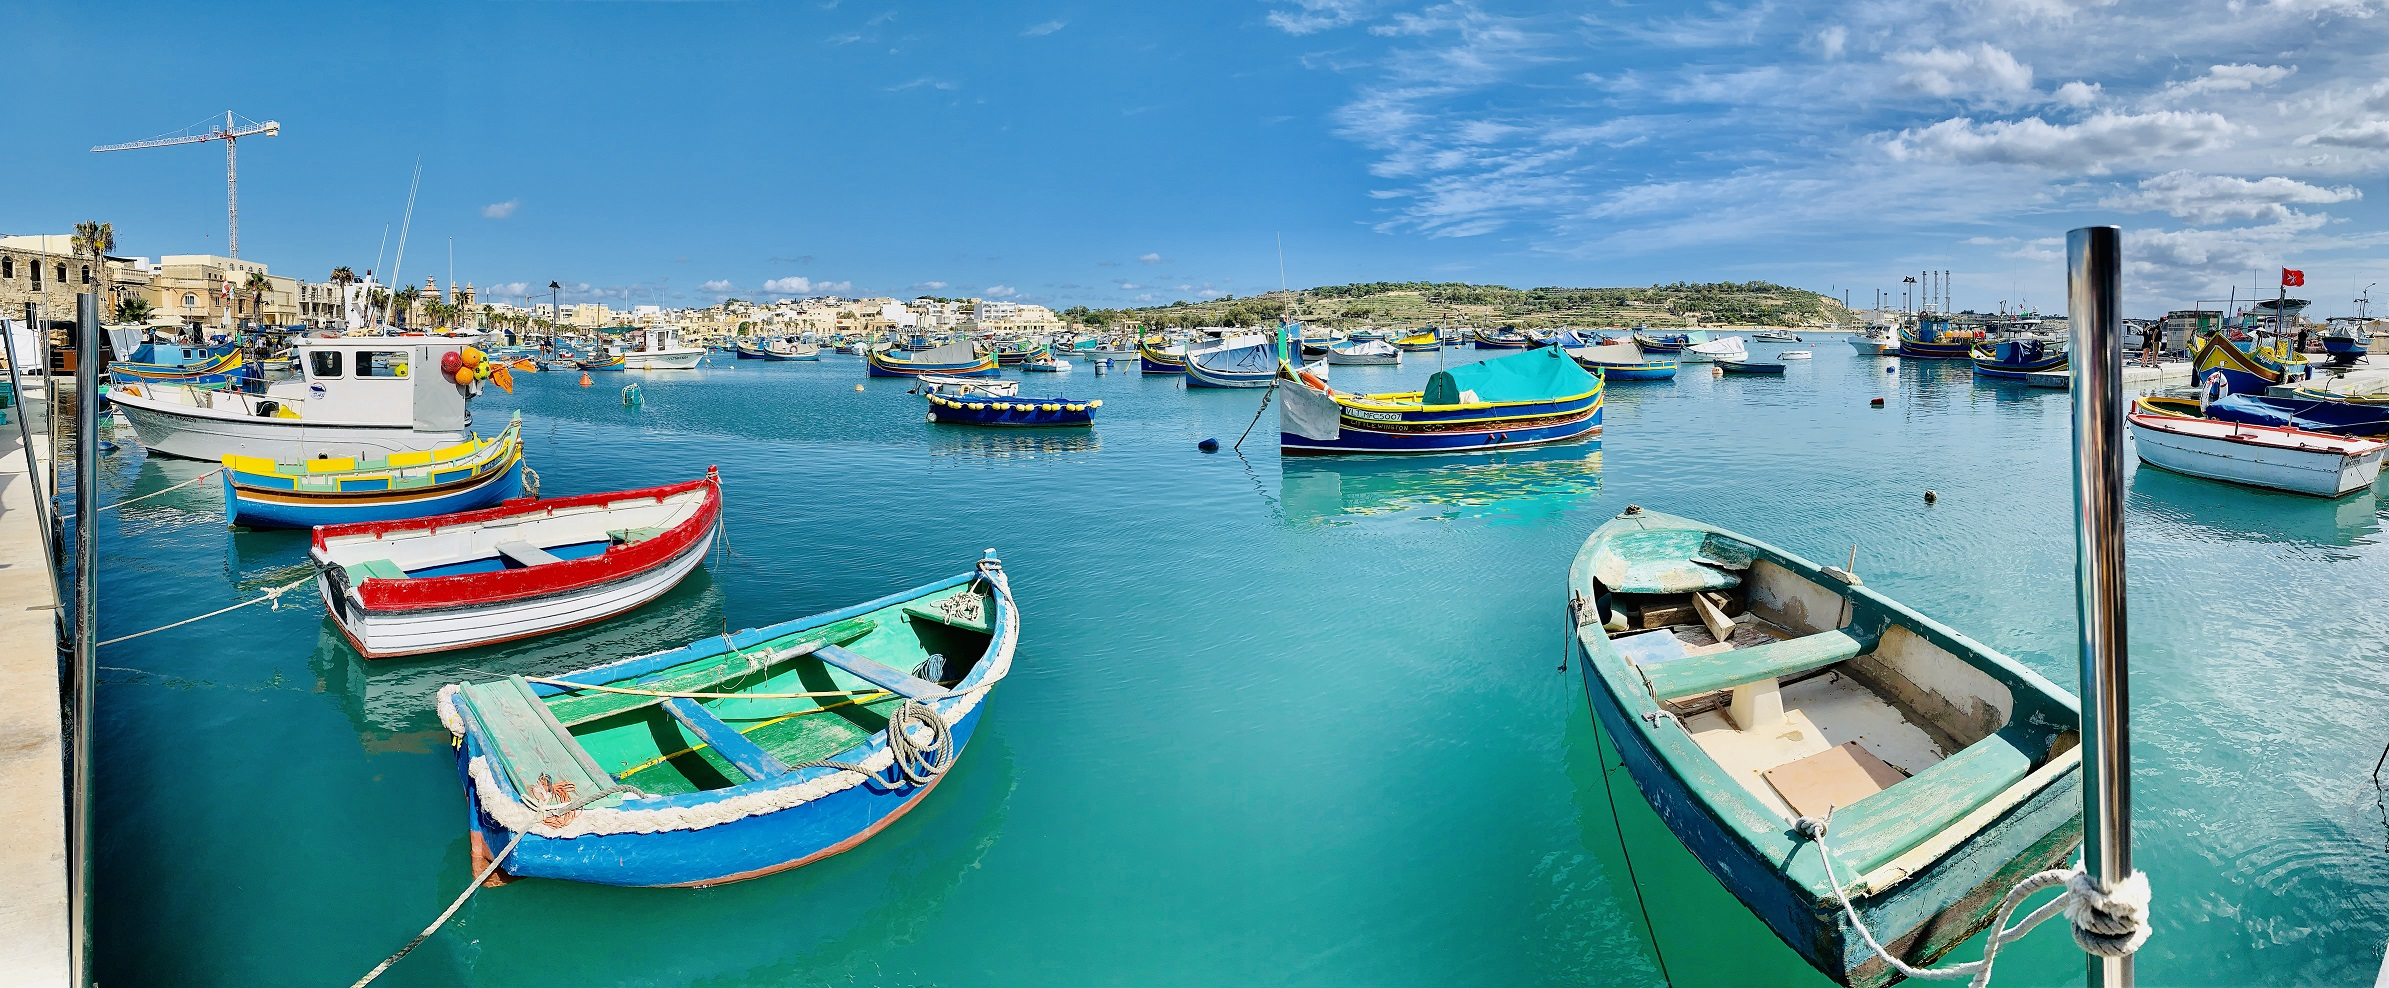 English language schools in Malta - Autumn and winter the perfect seasons to study English with Gateway School of English GSE cheaper course prices cheaper flight tickets